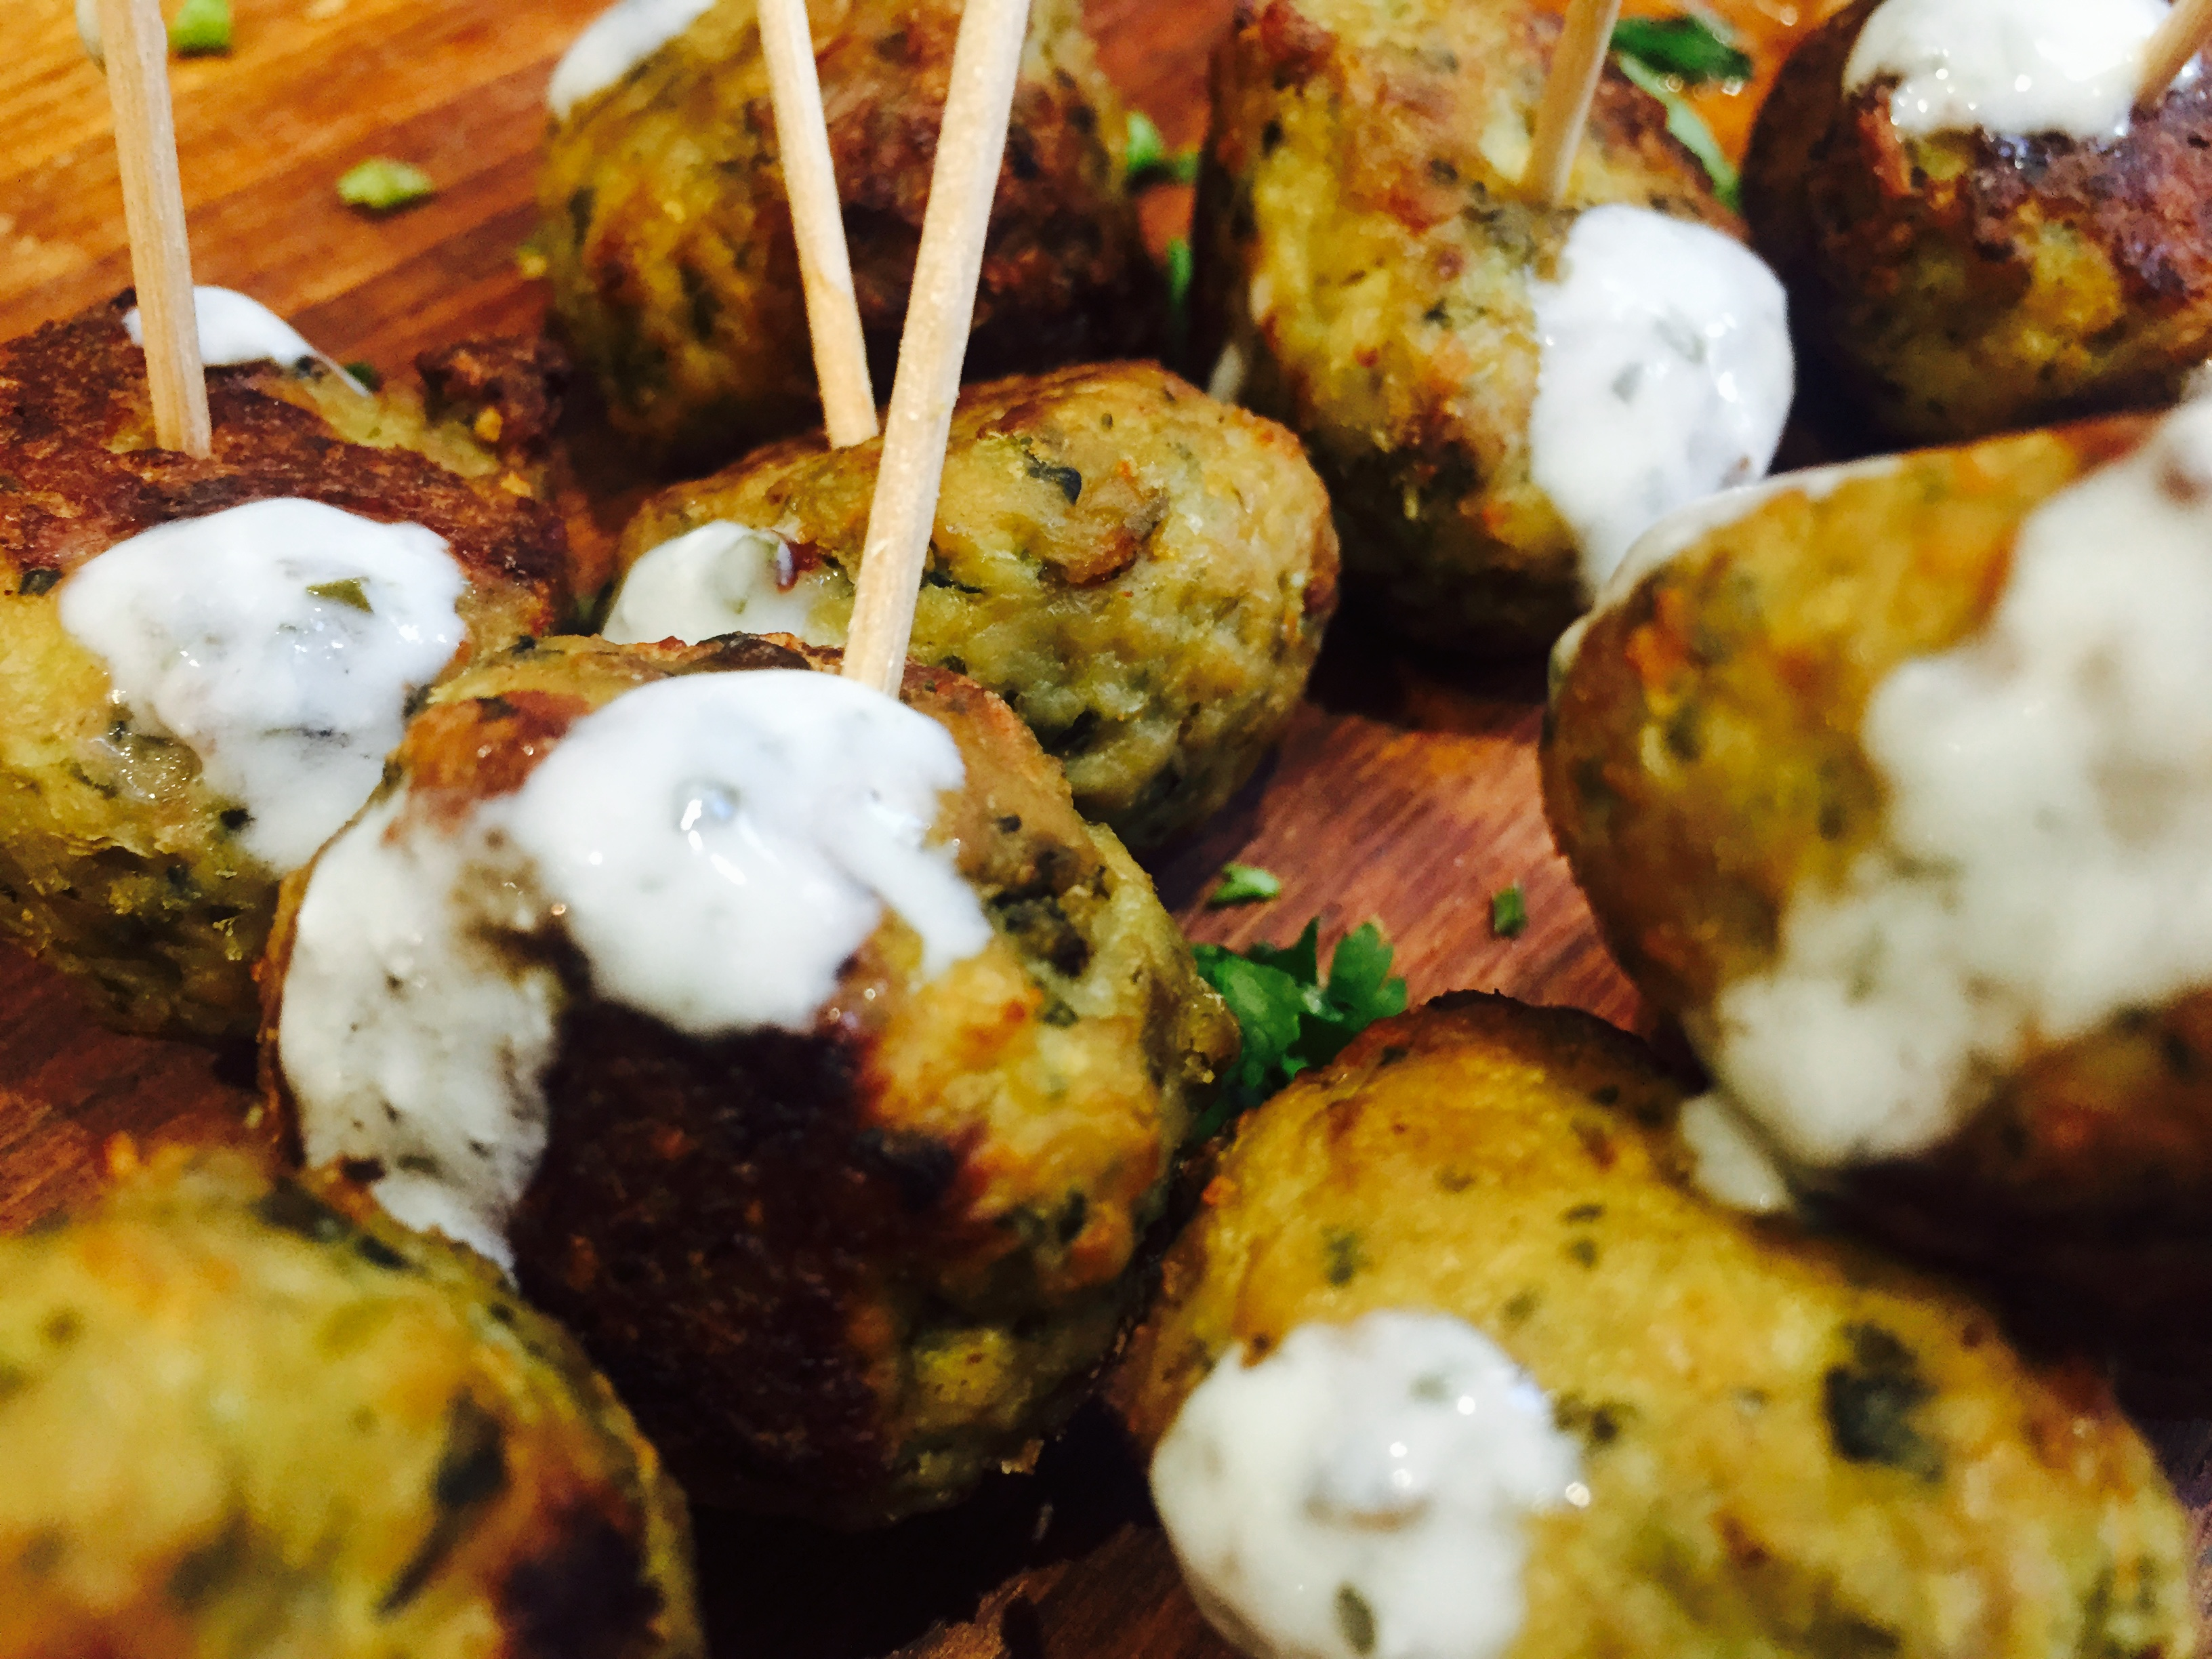 Chicken kofta canap s cooking with sukhi singh for Chicken canape ideas